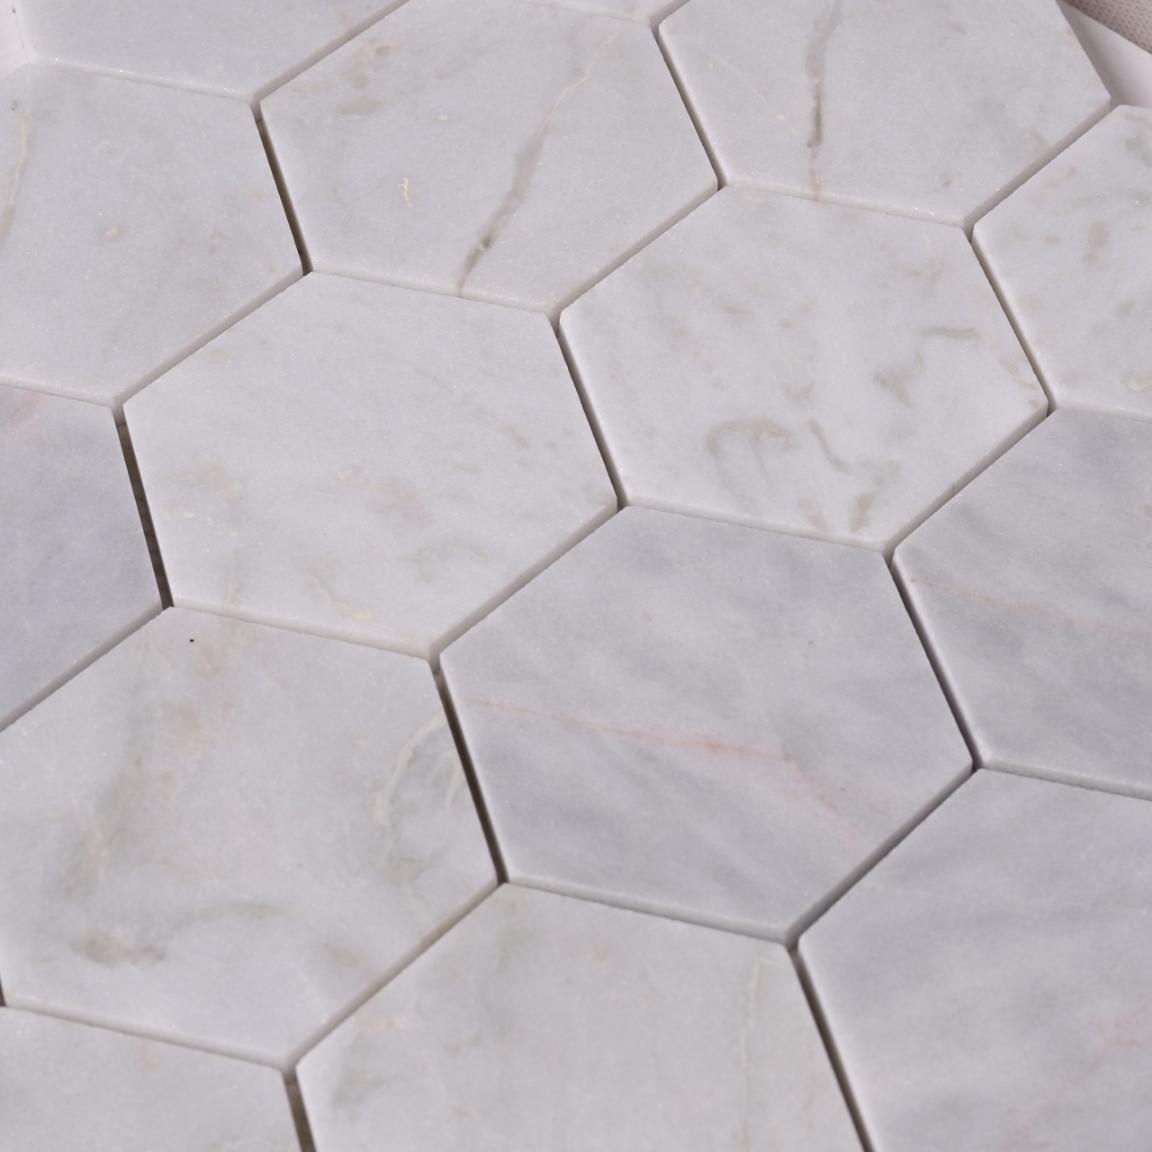 stone carrara herringbone design for bathroom Heng Xing-4